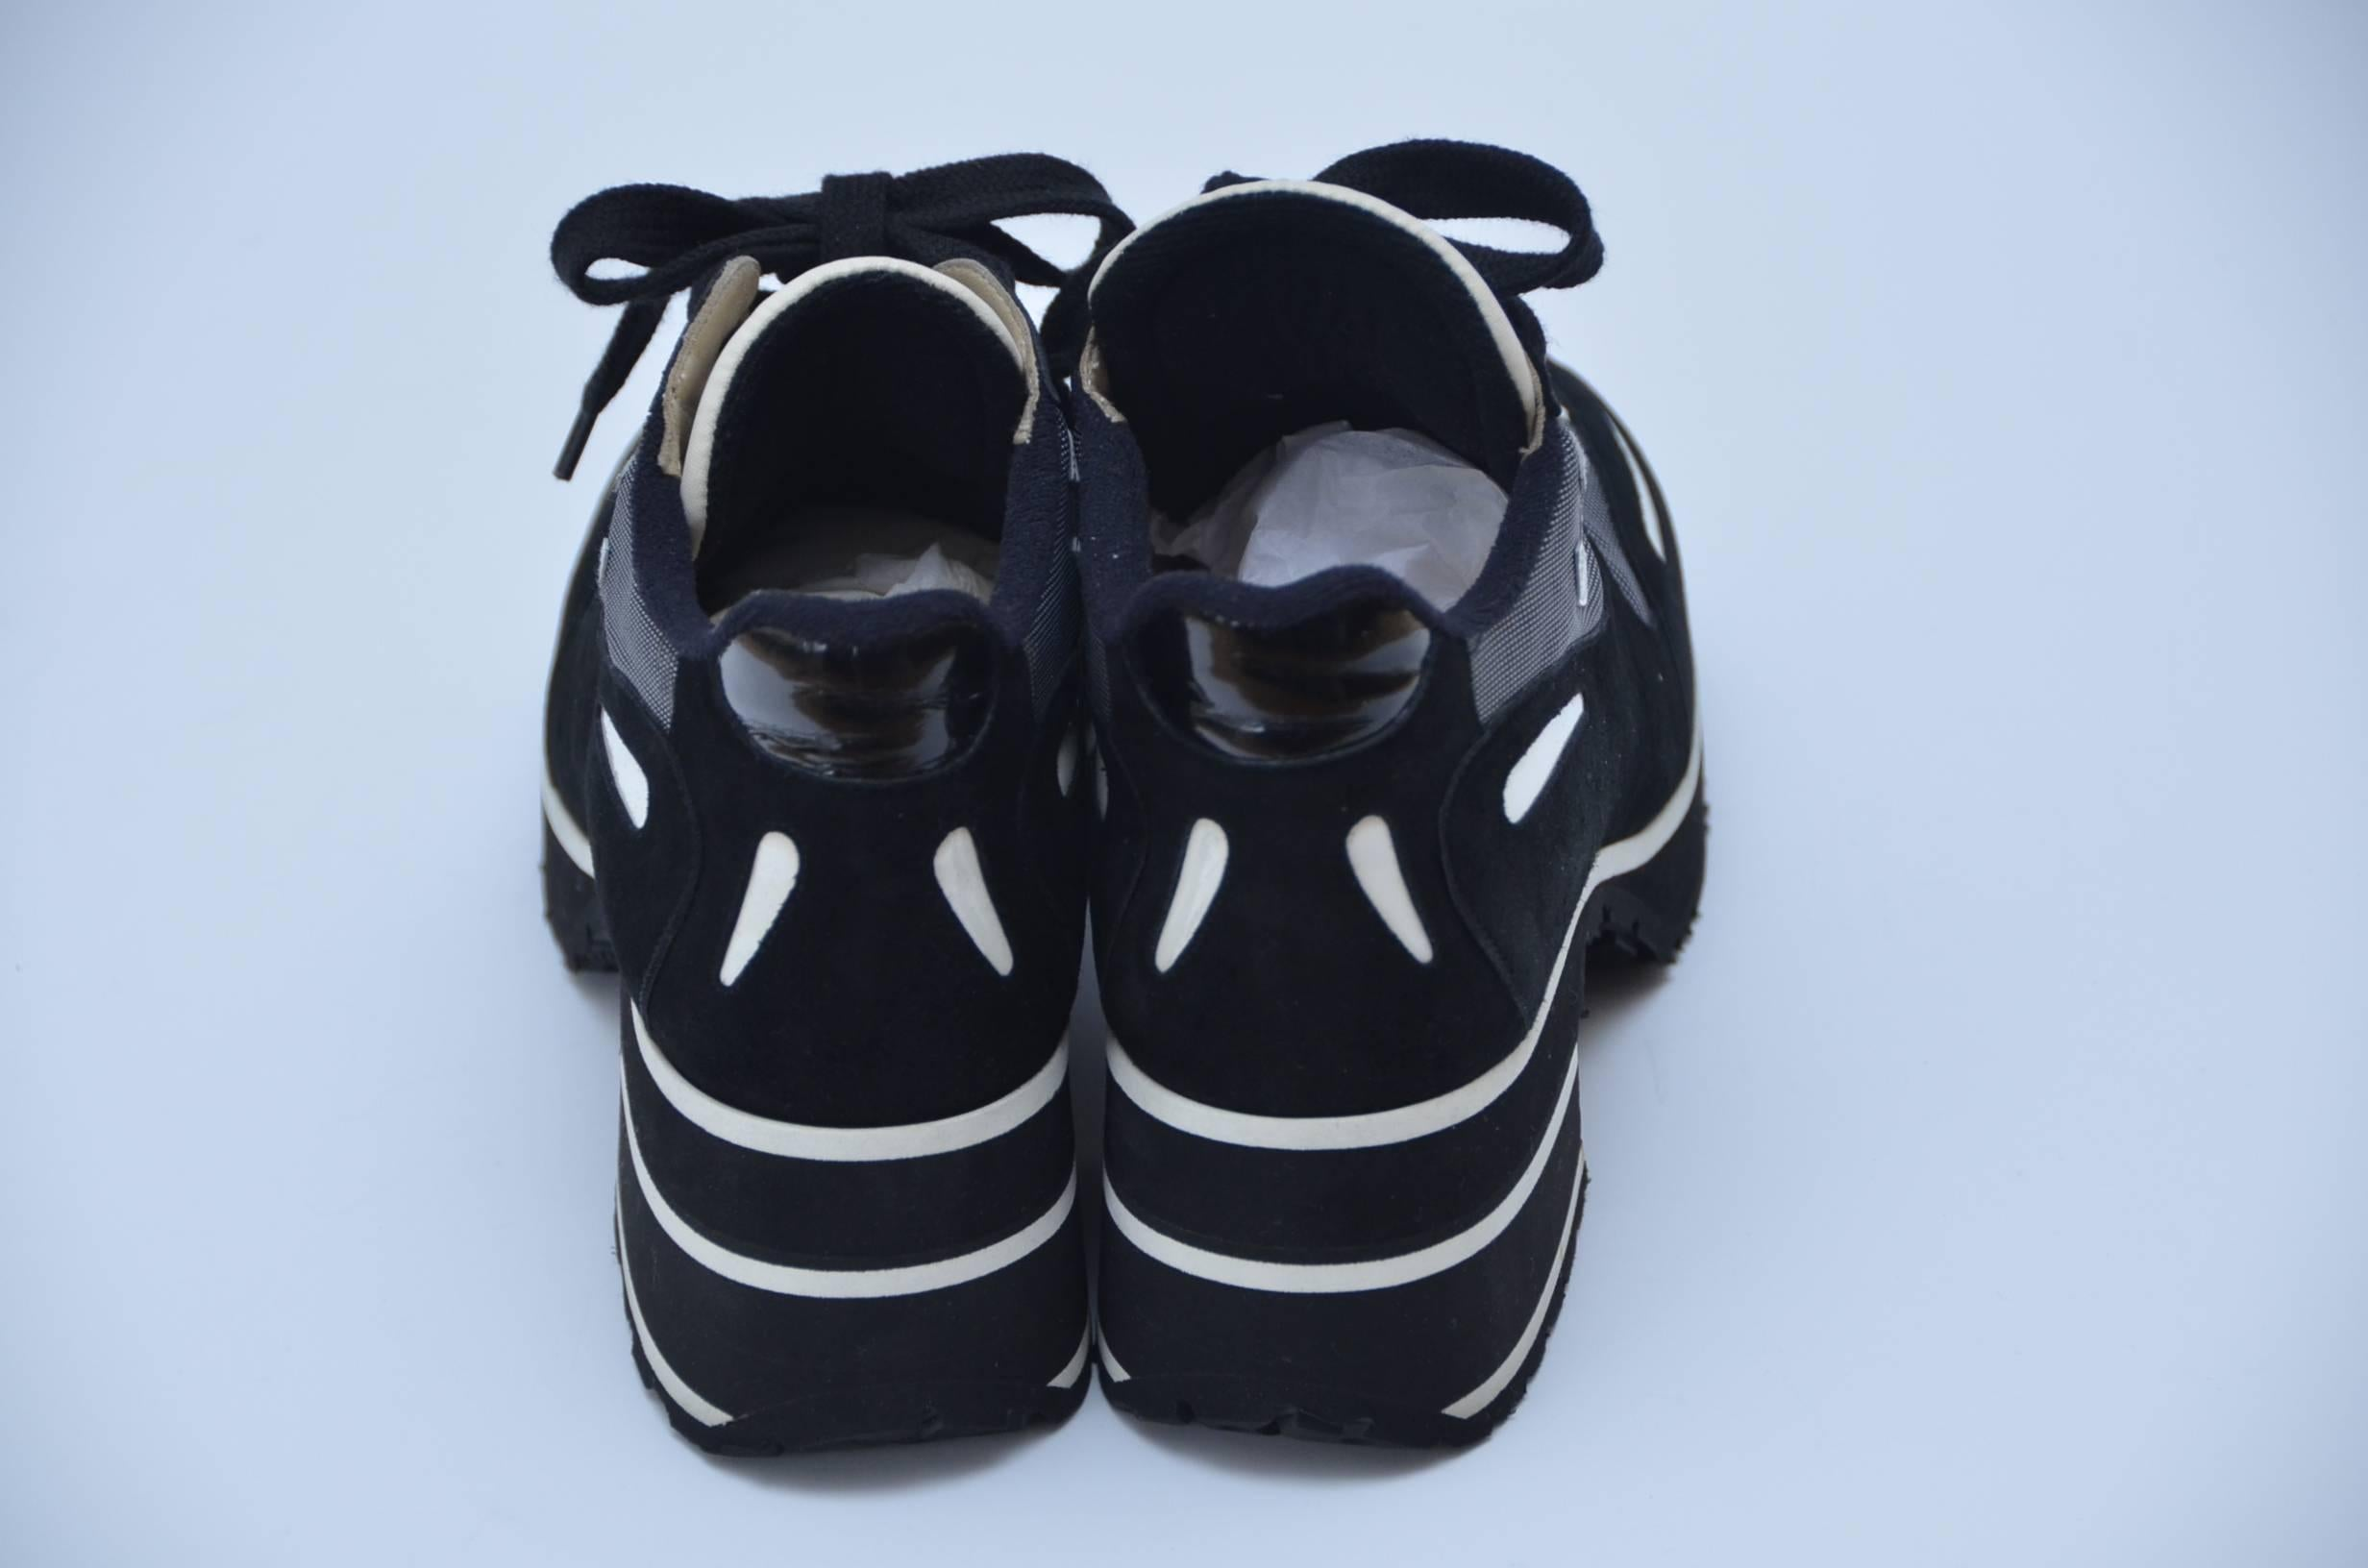 1d02608add5b CHANEL 1997 Platform Black White Shoes Sneakers New 38.5 at 1stdibs